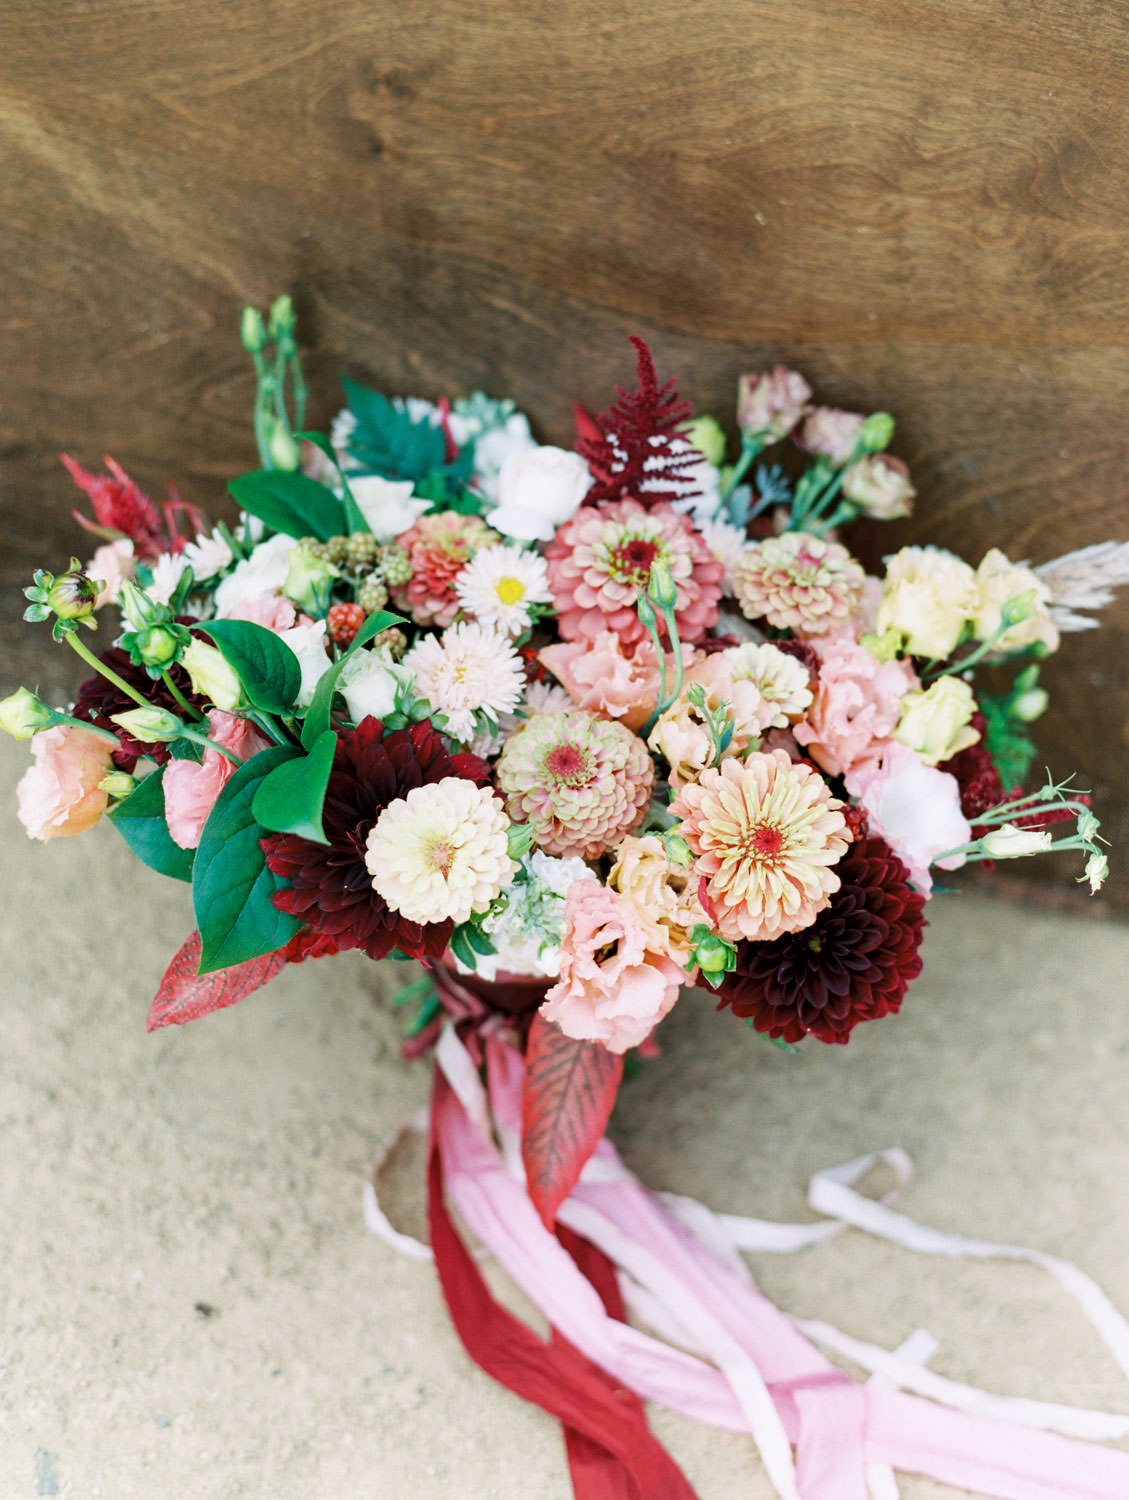 Bridal bouquet with ivory, peach, wine, blush flowers and mauve, wine, and blush ribbons. Full Belly Farm on Martha Stewart Weddings by film photographer Cavin Elizabeth Photography